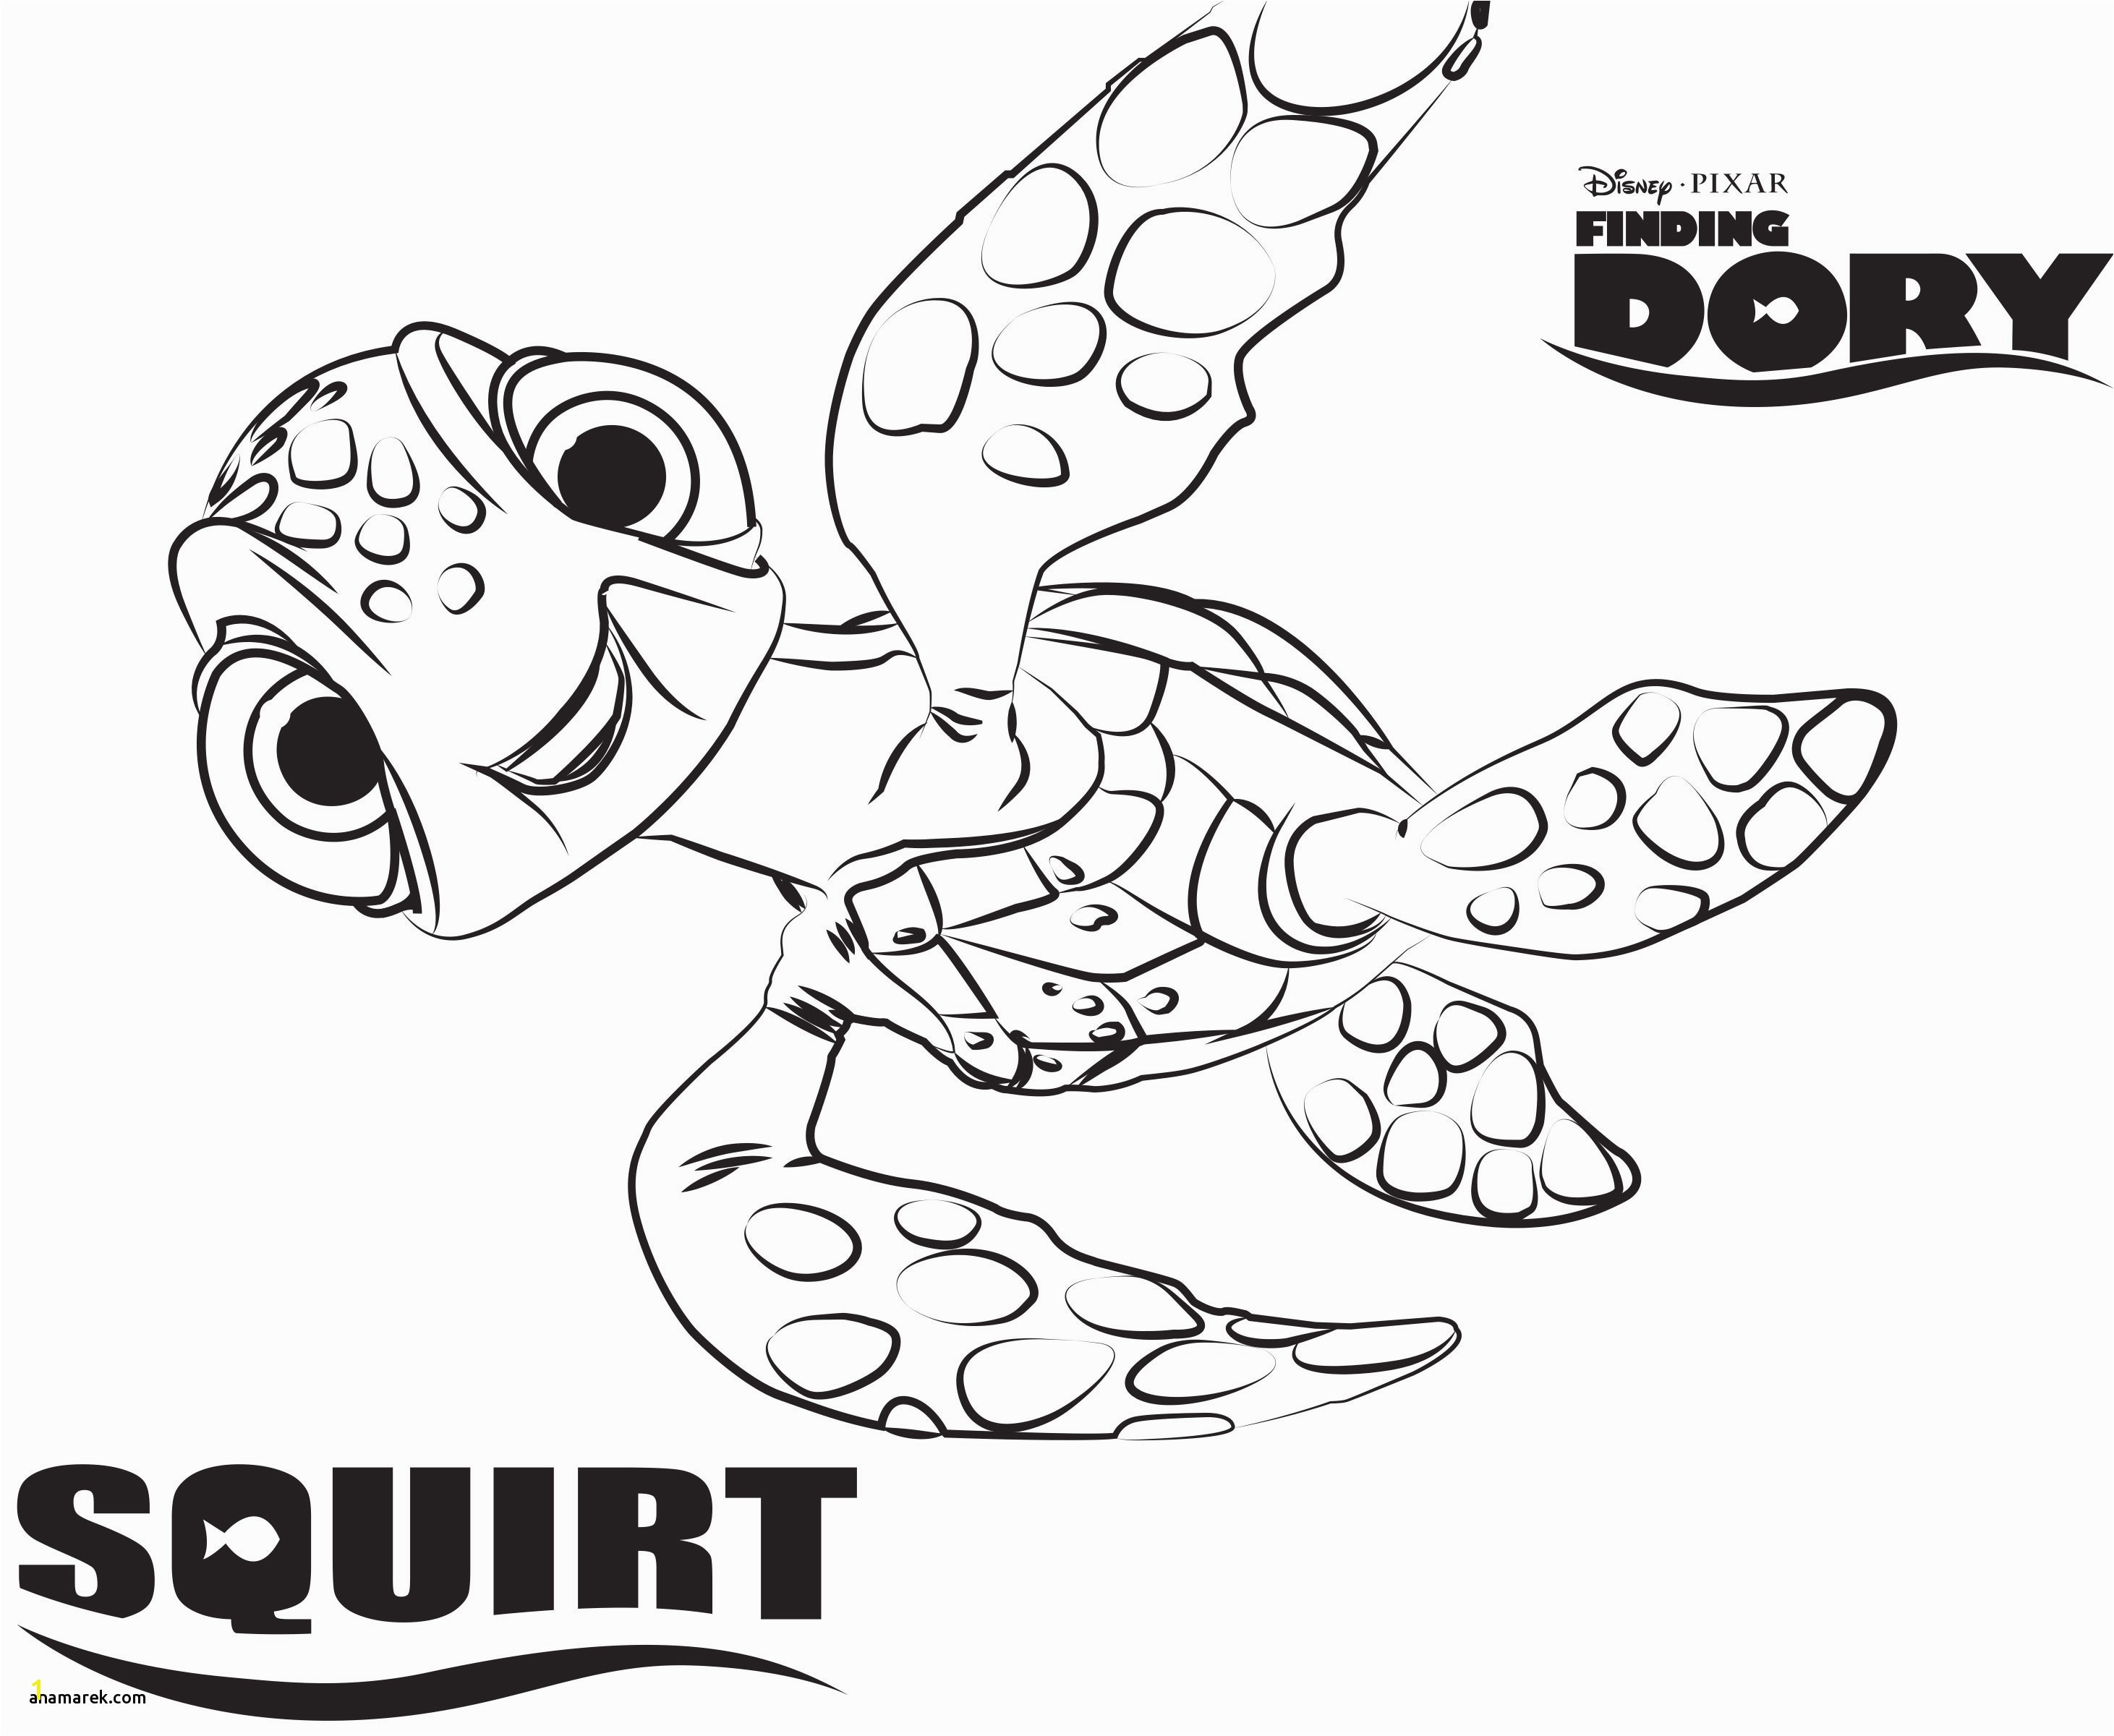 Finding Nemo Coloring Book Inspirationa Finding Dory Coloring Book Unique Finding Nemo Coloring Pages Disney